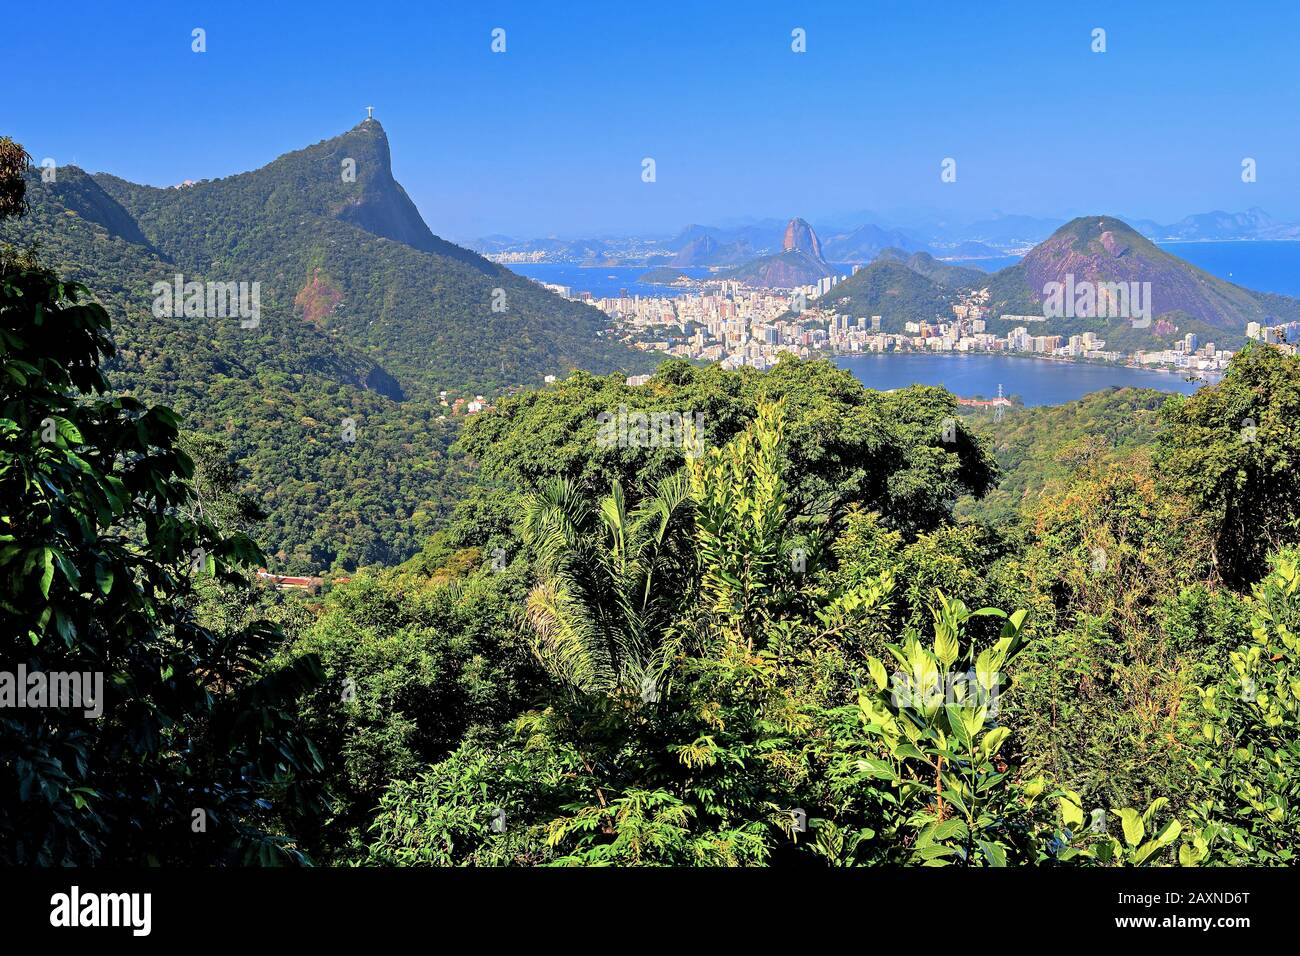 Vista Chinesa in the Tijuca national park with view over the rainforest to the Corcovado 710 m and Sugar Loaf Mountain 396 m, Rio de Janeiro, Brazil Stock Photo